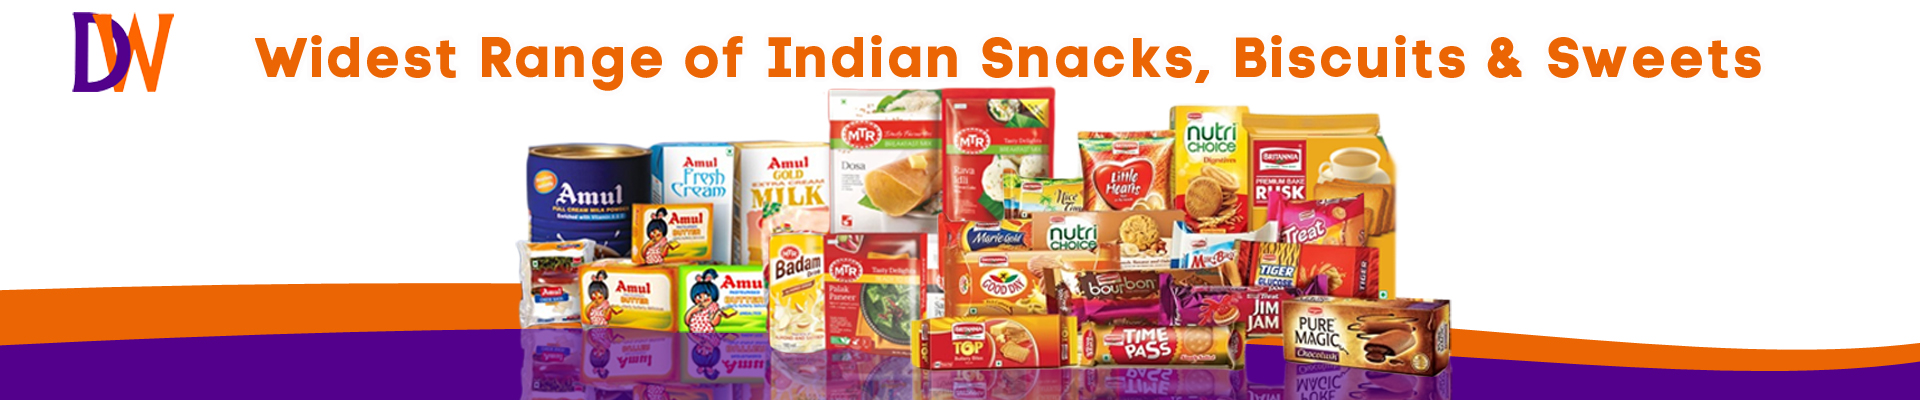 Indian Snacks, Biscuits & Sweets